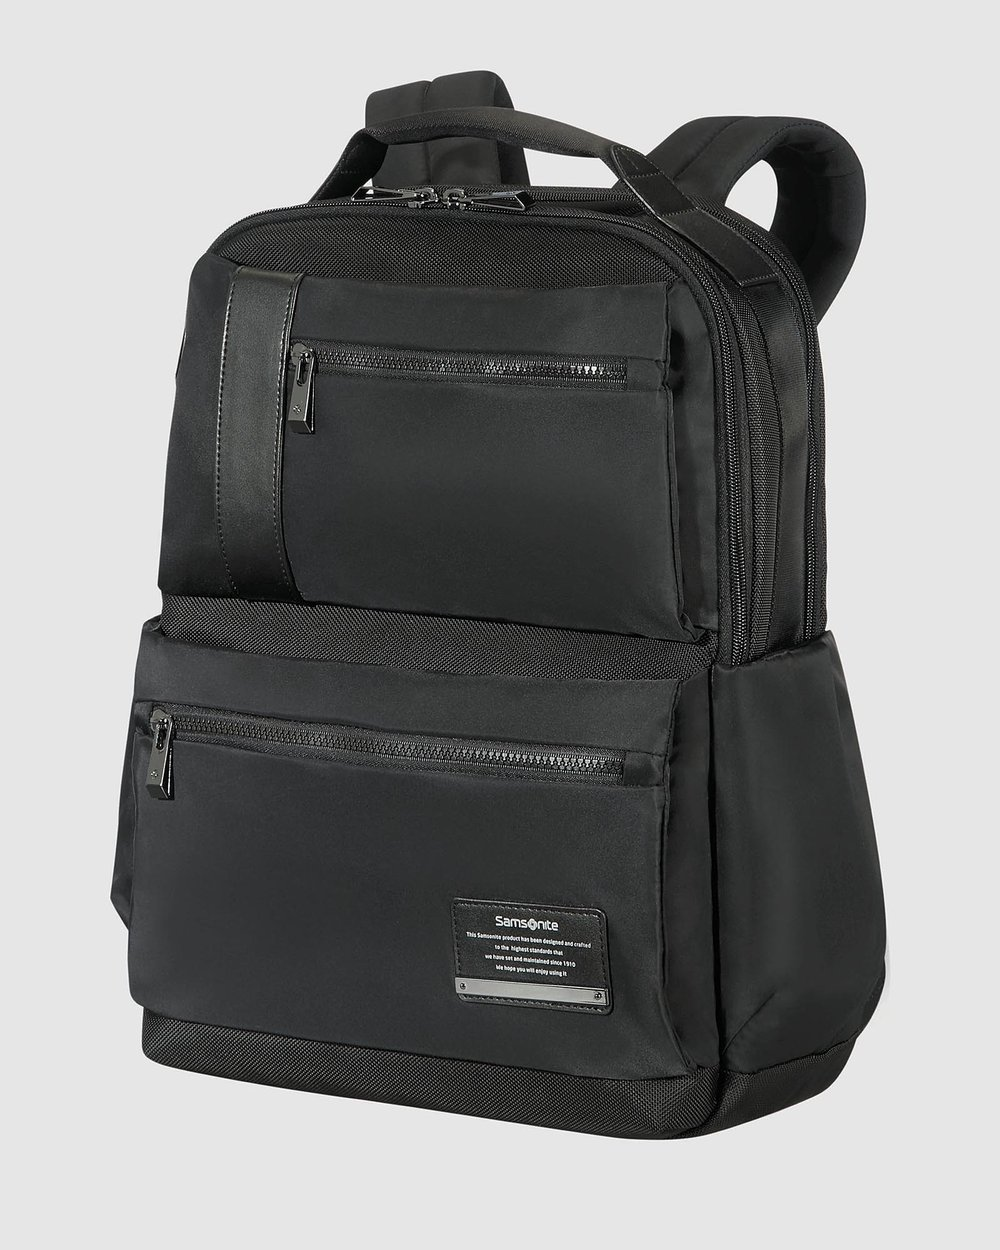 Open Road Laptop Backpack by Samsonite Business Online  cb5a8a4da9c88